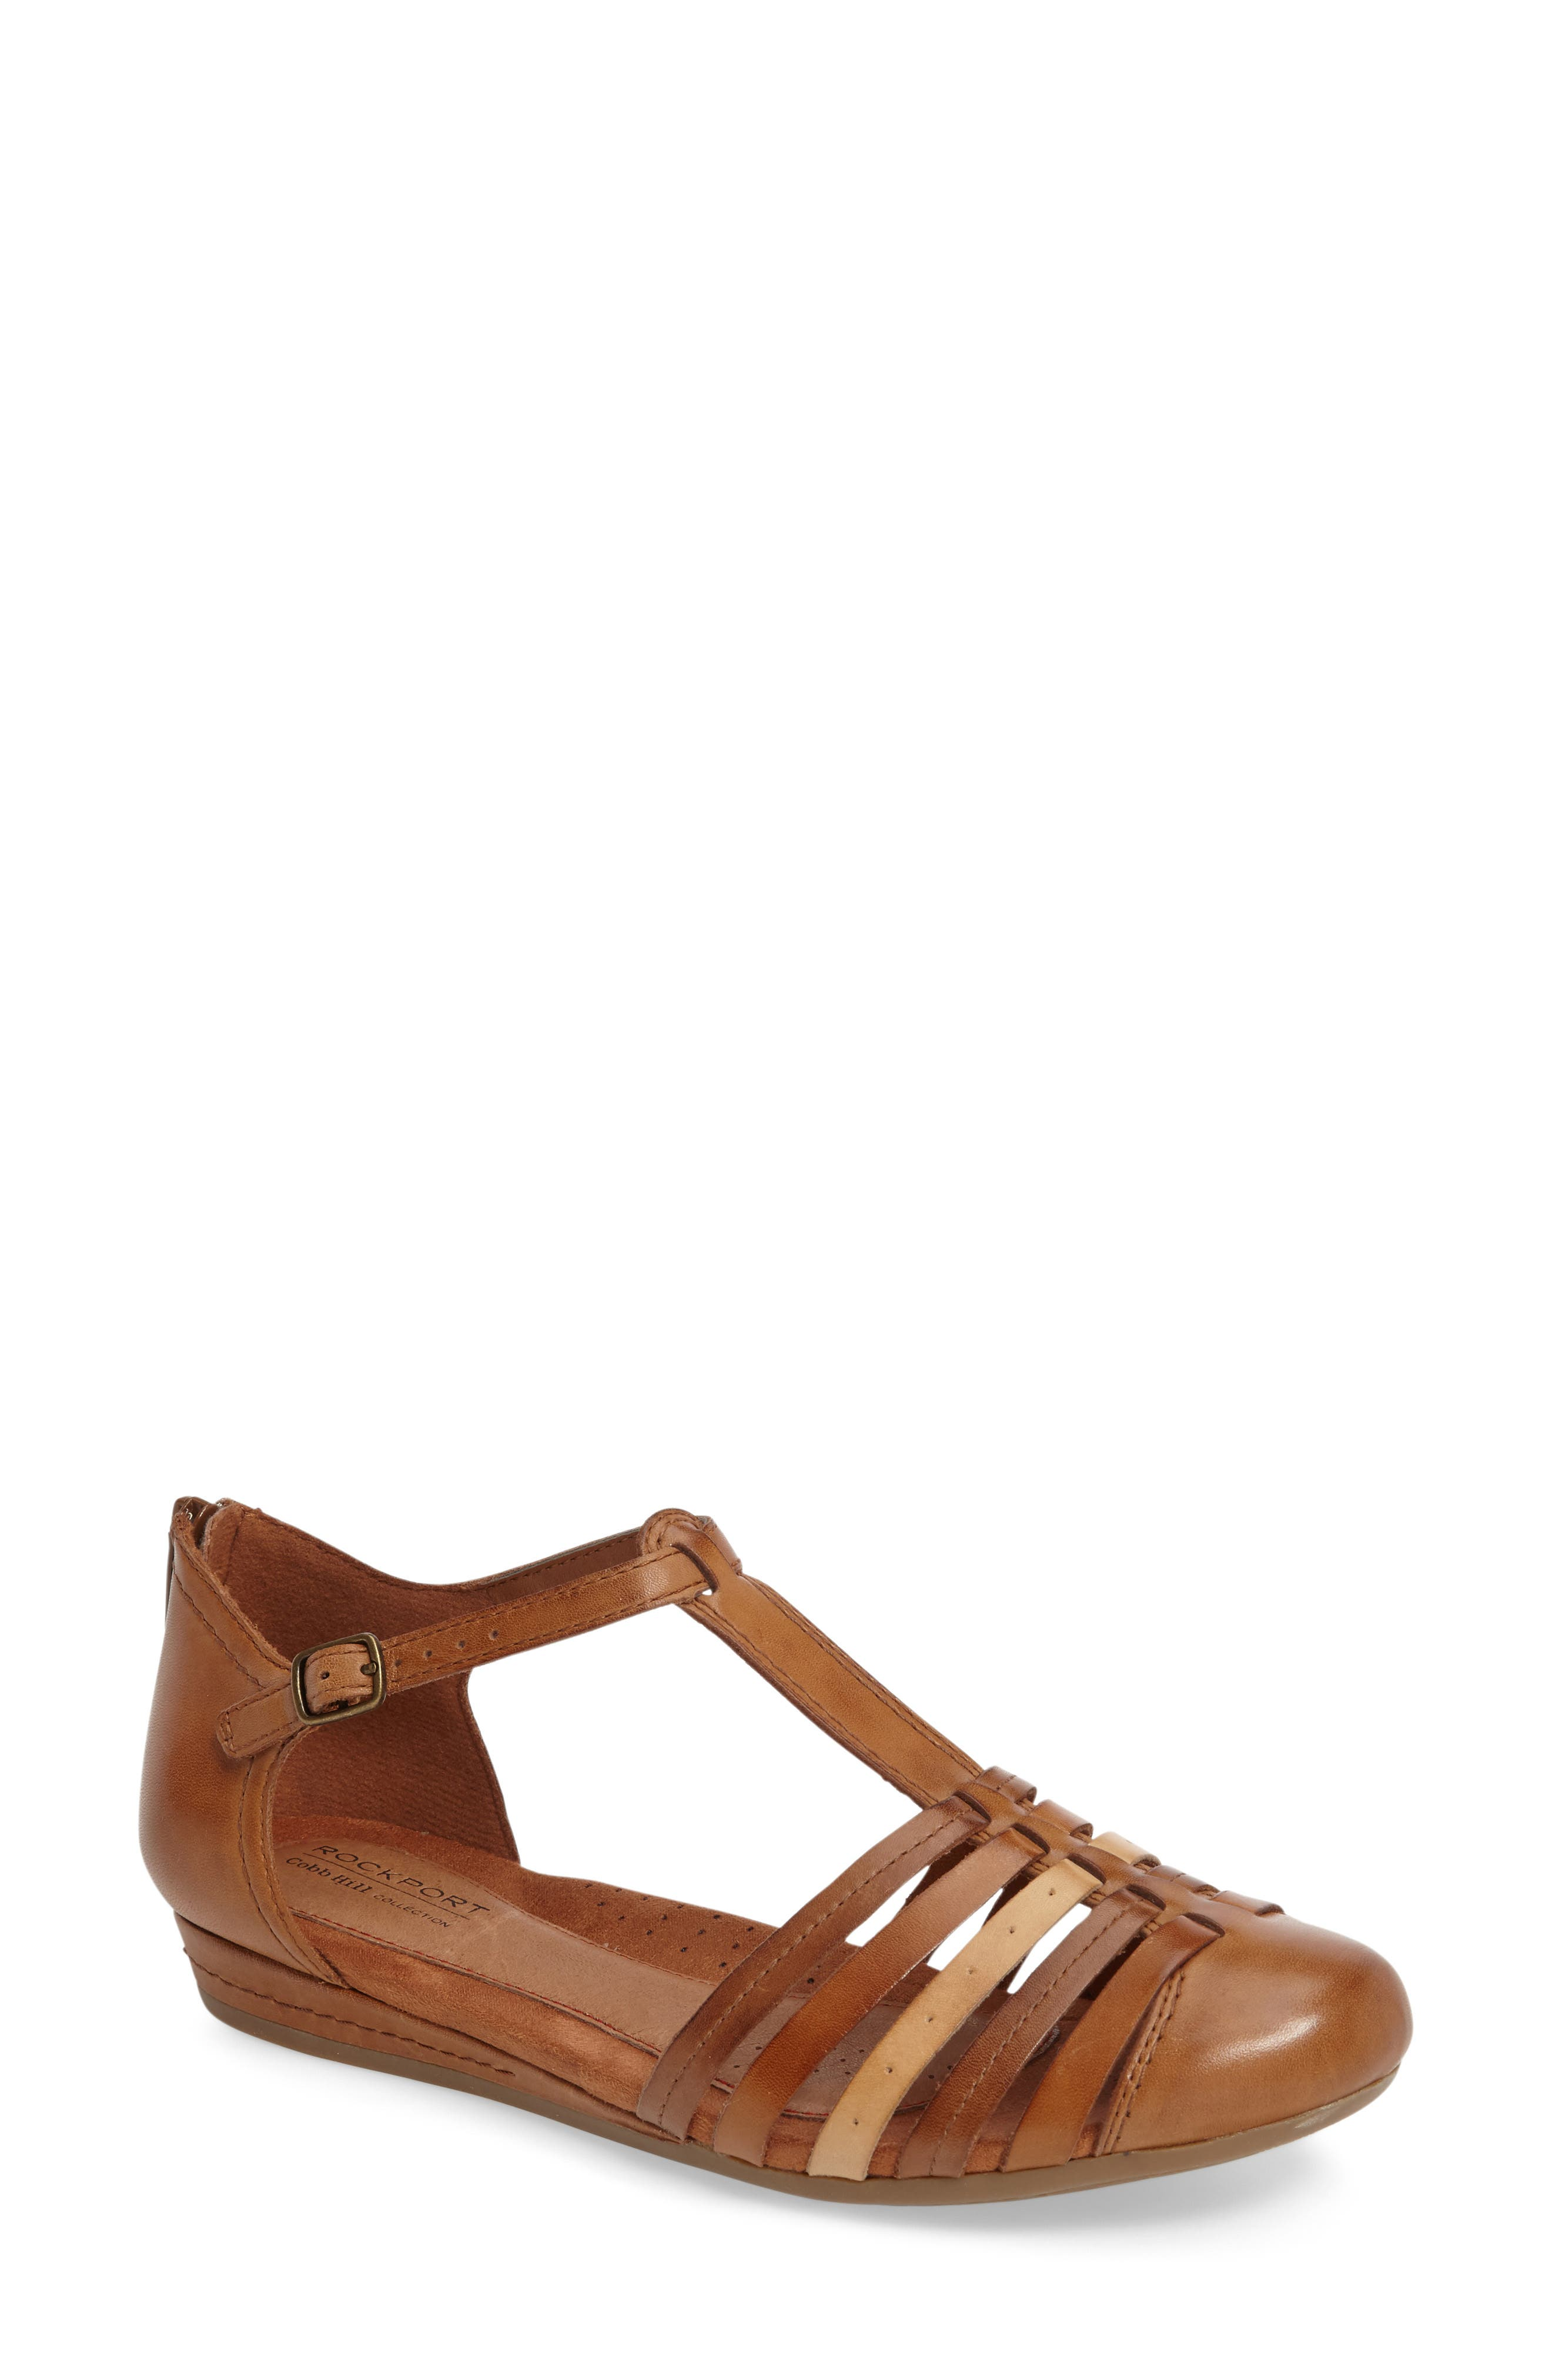 Galway T-Strap Sandal,                             Main thumbnail 3, color,